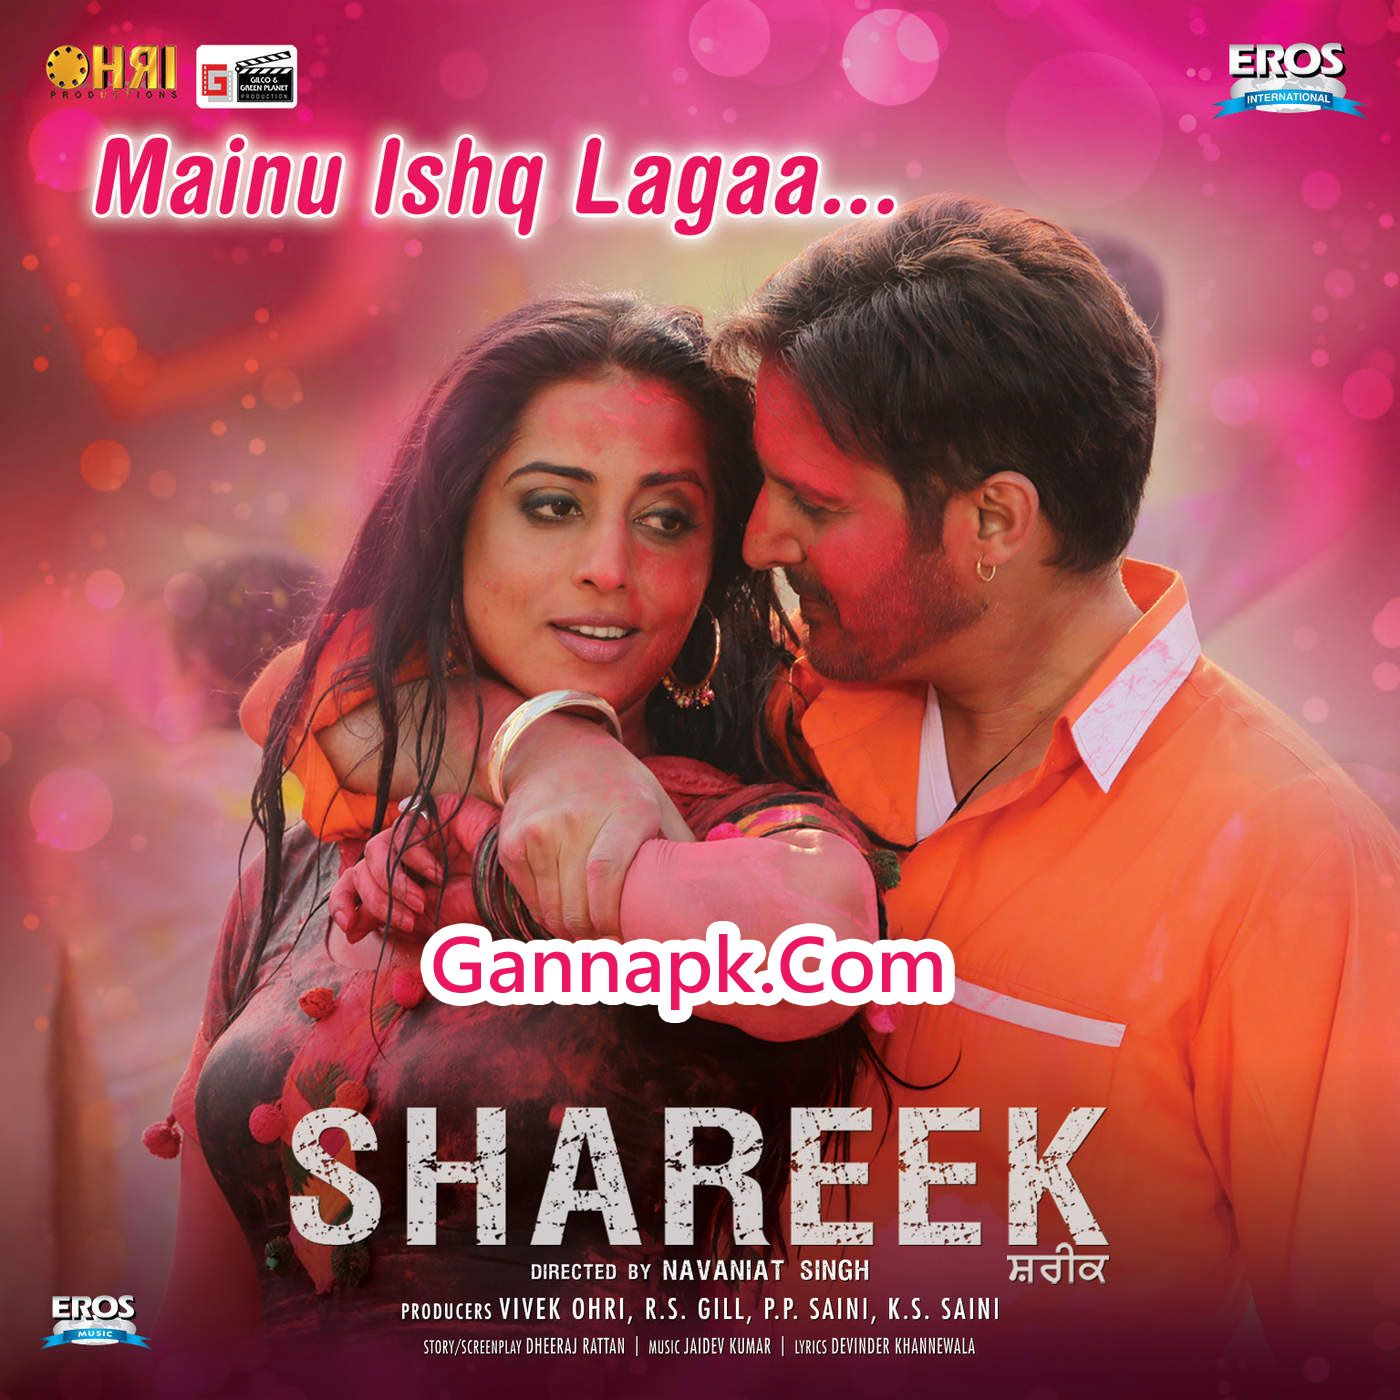 Karachi Di Mp3 Song Download: Romeo And Juliet Telugu Movie Songs Mp3 Download